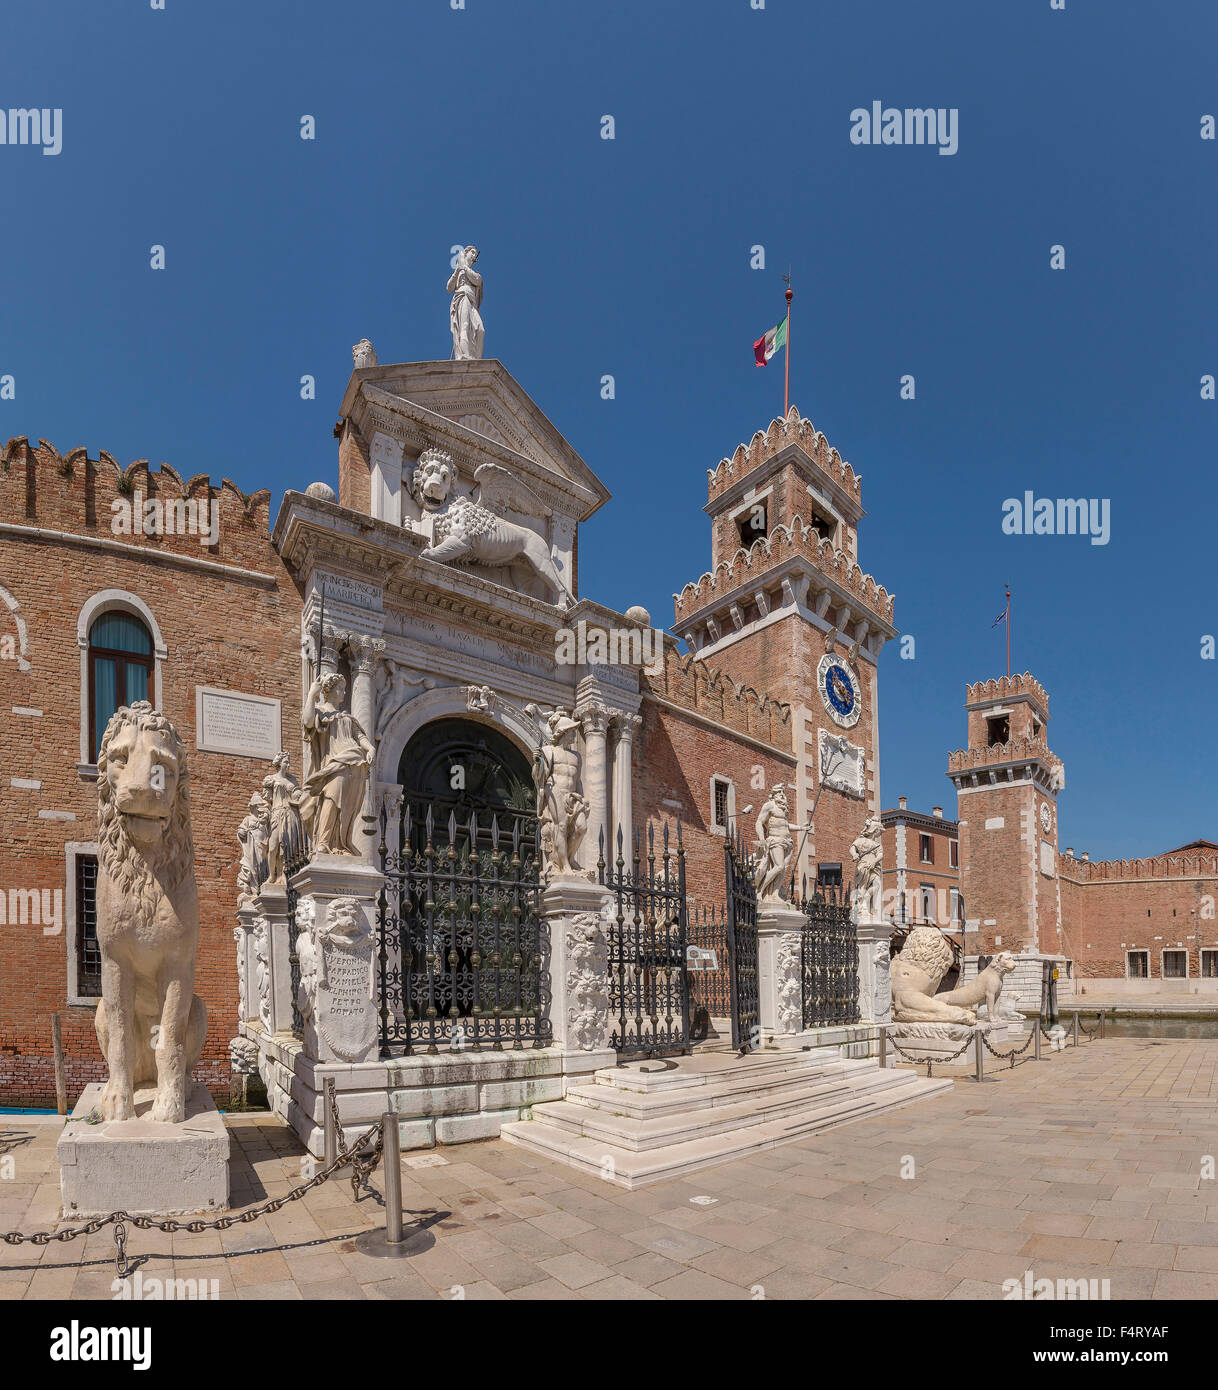 Italy, Europe, Venezia, Venice, Veneto, Arsenale di Venezia, entrance, Castello, village, summer, fortress, - Stock Image